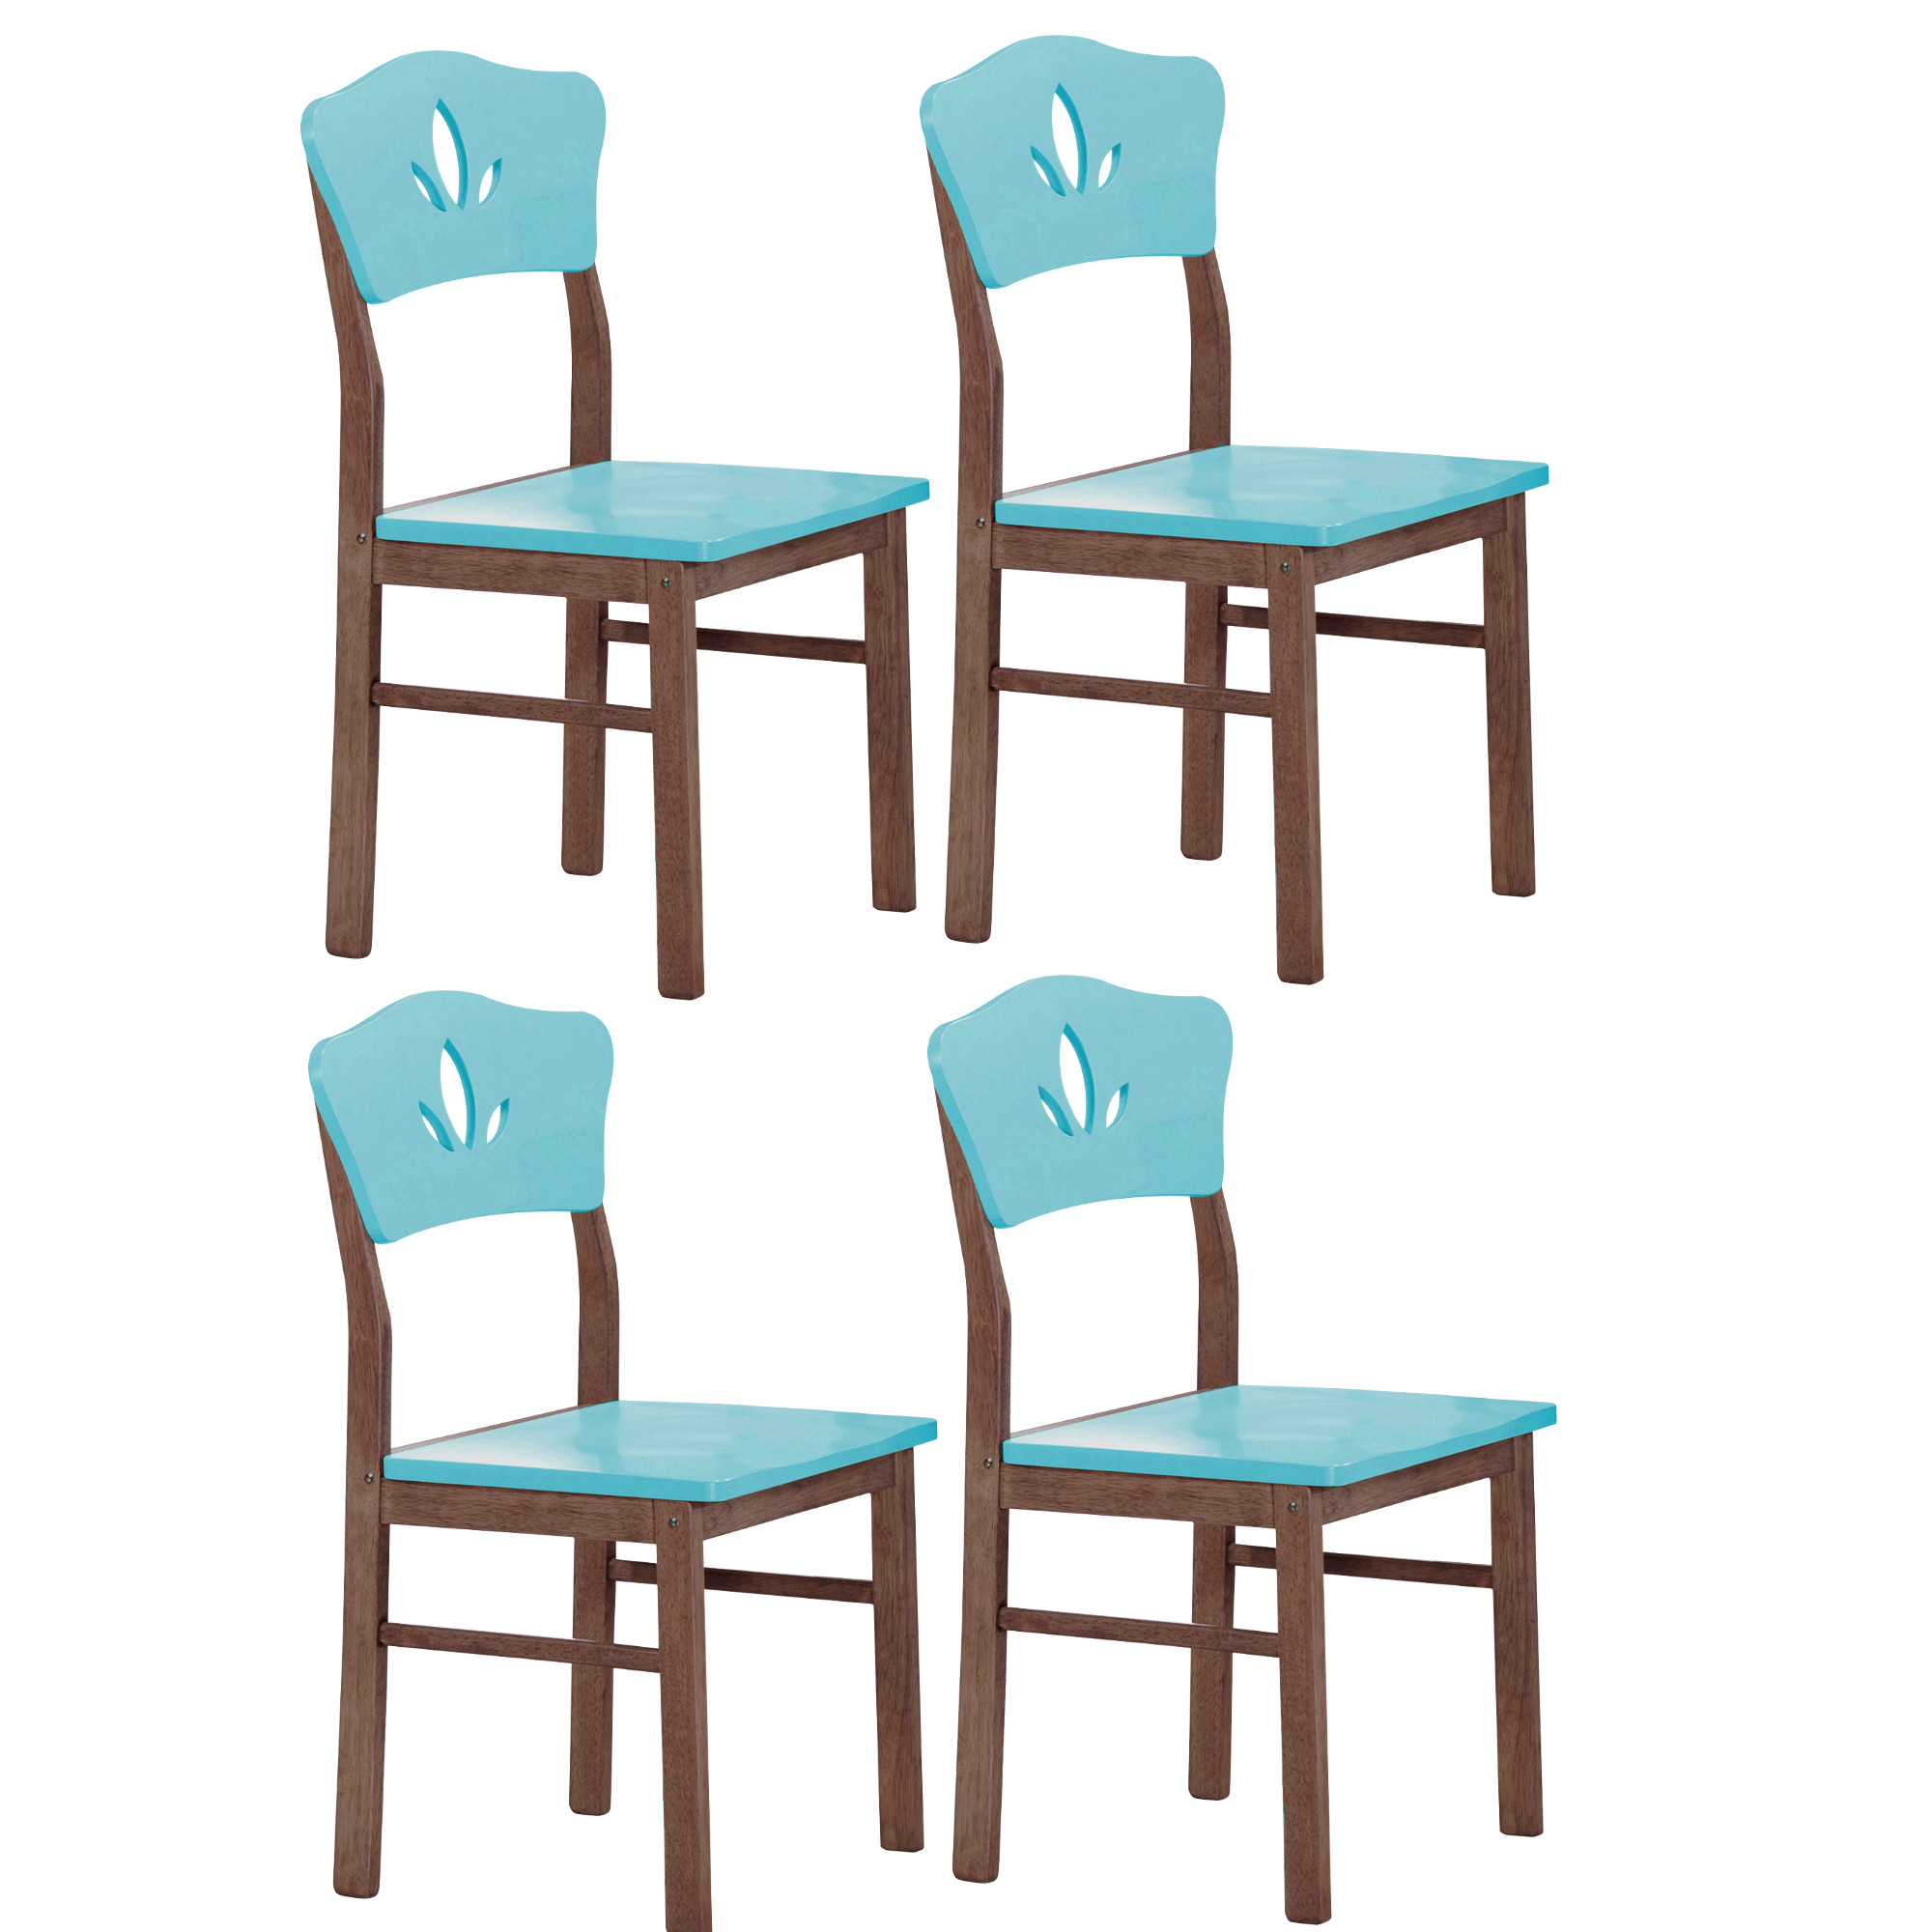 Lori Kitchen Dinette Retro Dining Chairs Blue Chocolate Wood Contemporary Set Of 4 Walmart Com Walmart Com